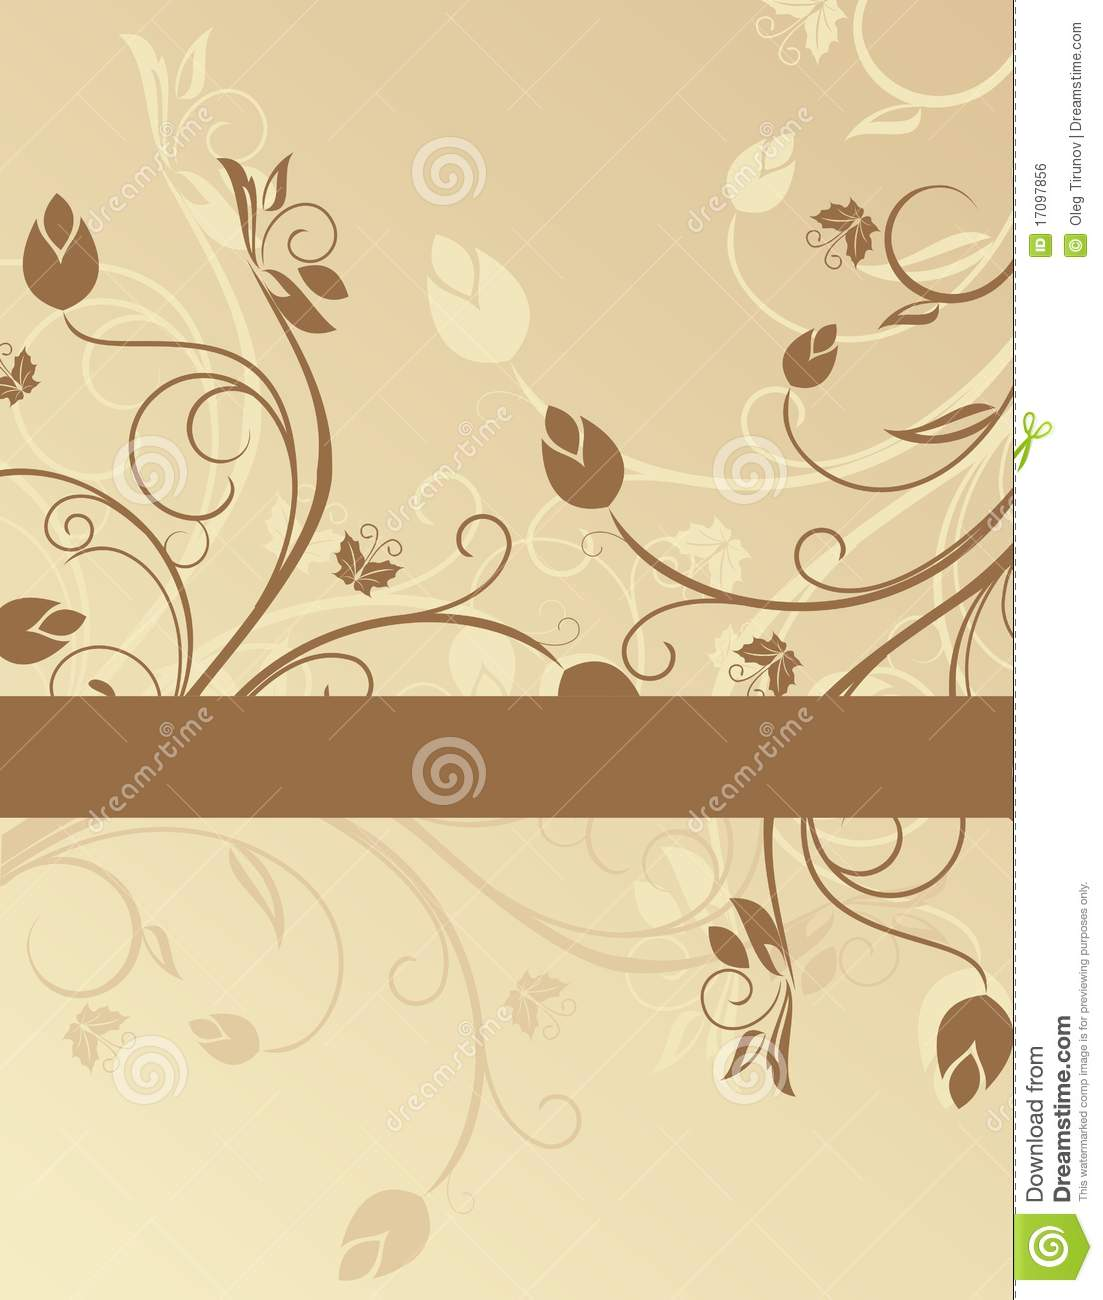 Background floral